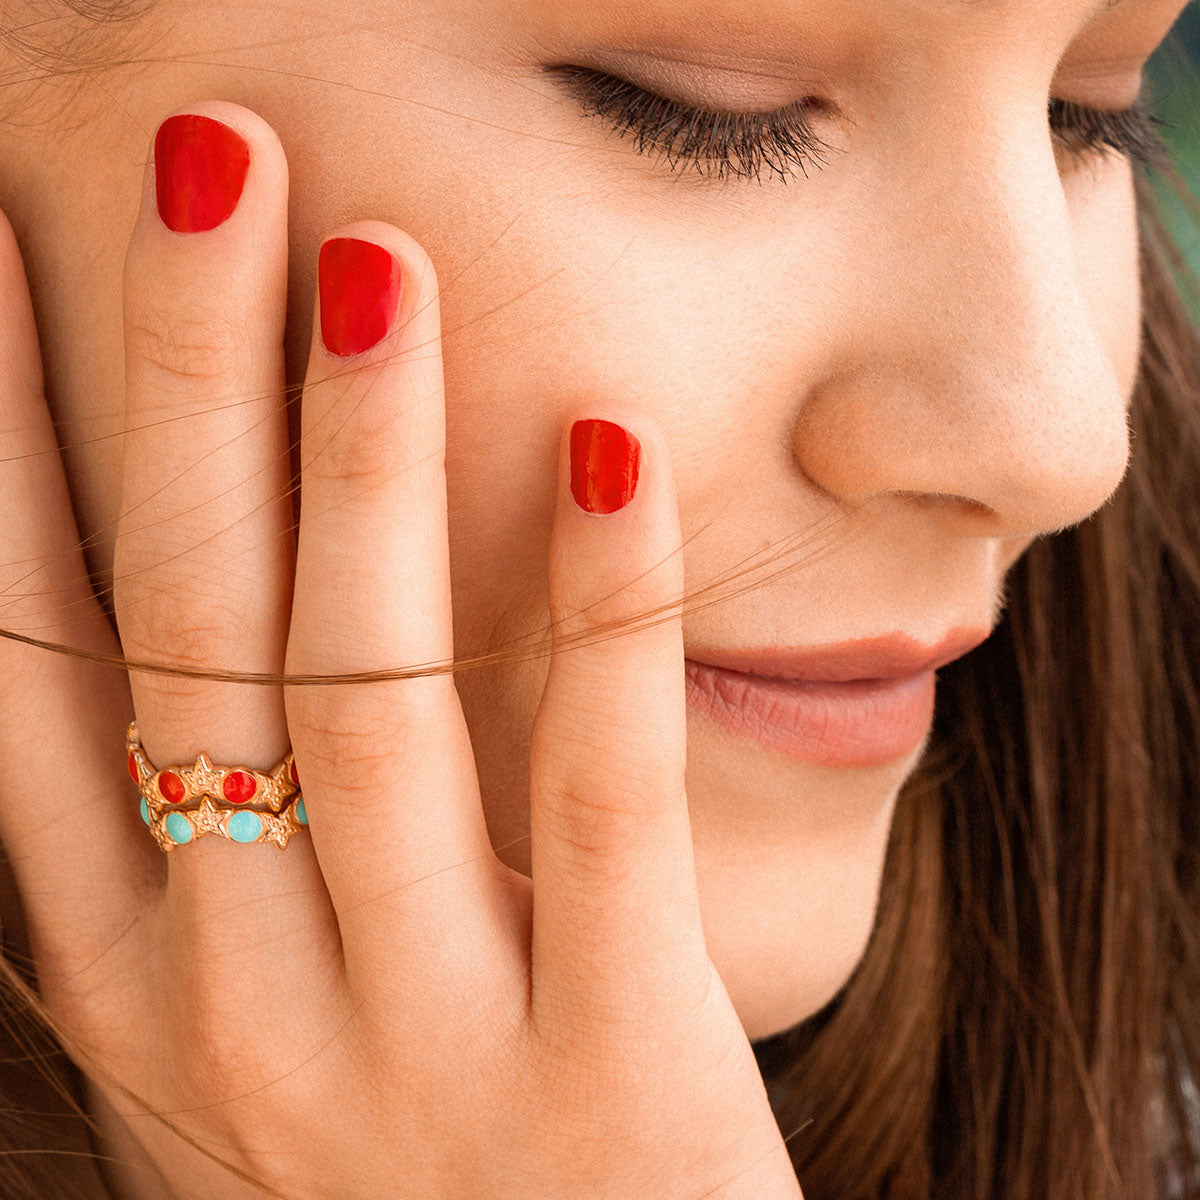 Rings - Ring - Enameled Cabochon Turquoise Dots and Starfishes - 2   Rue des Mille